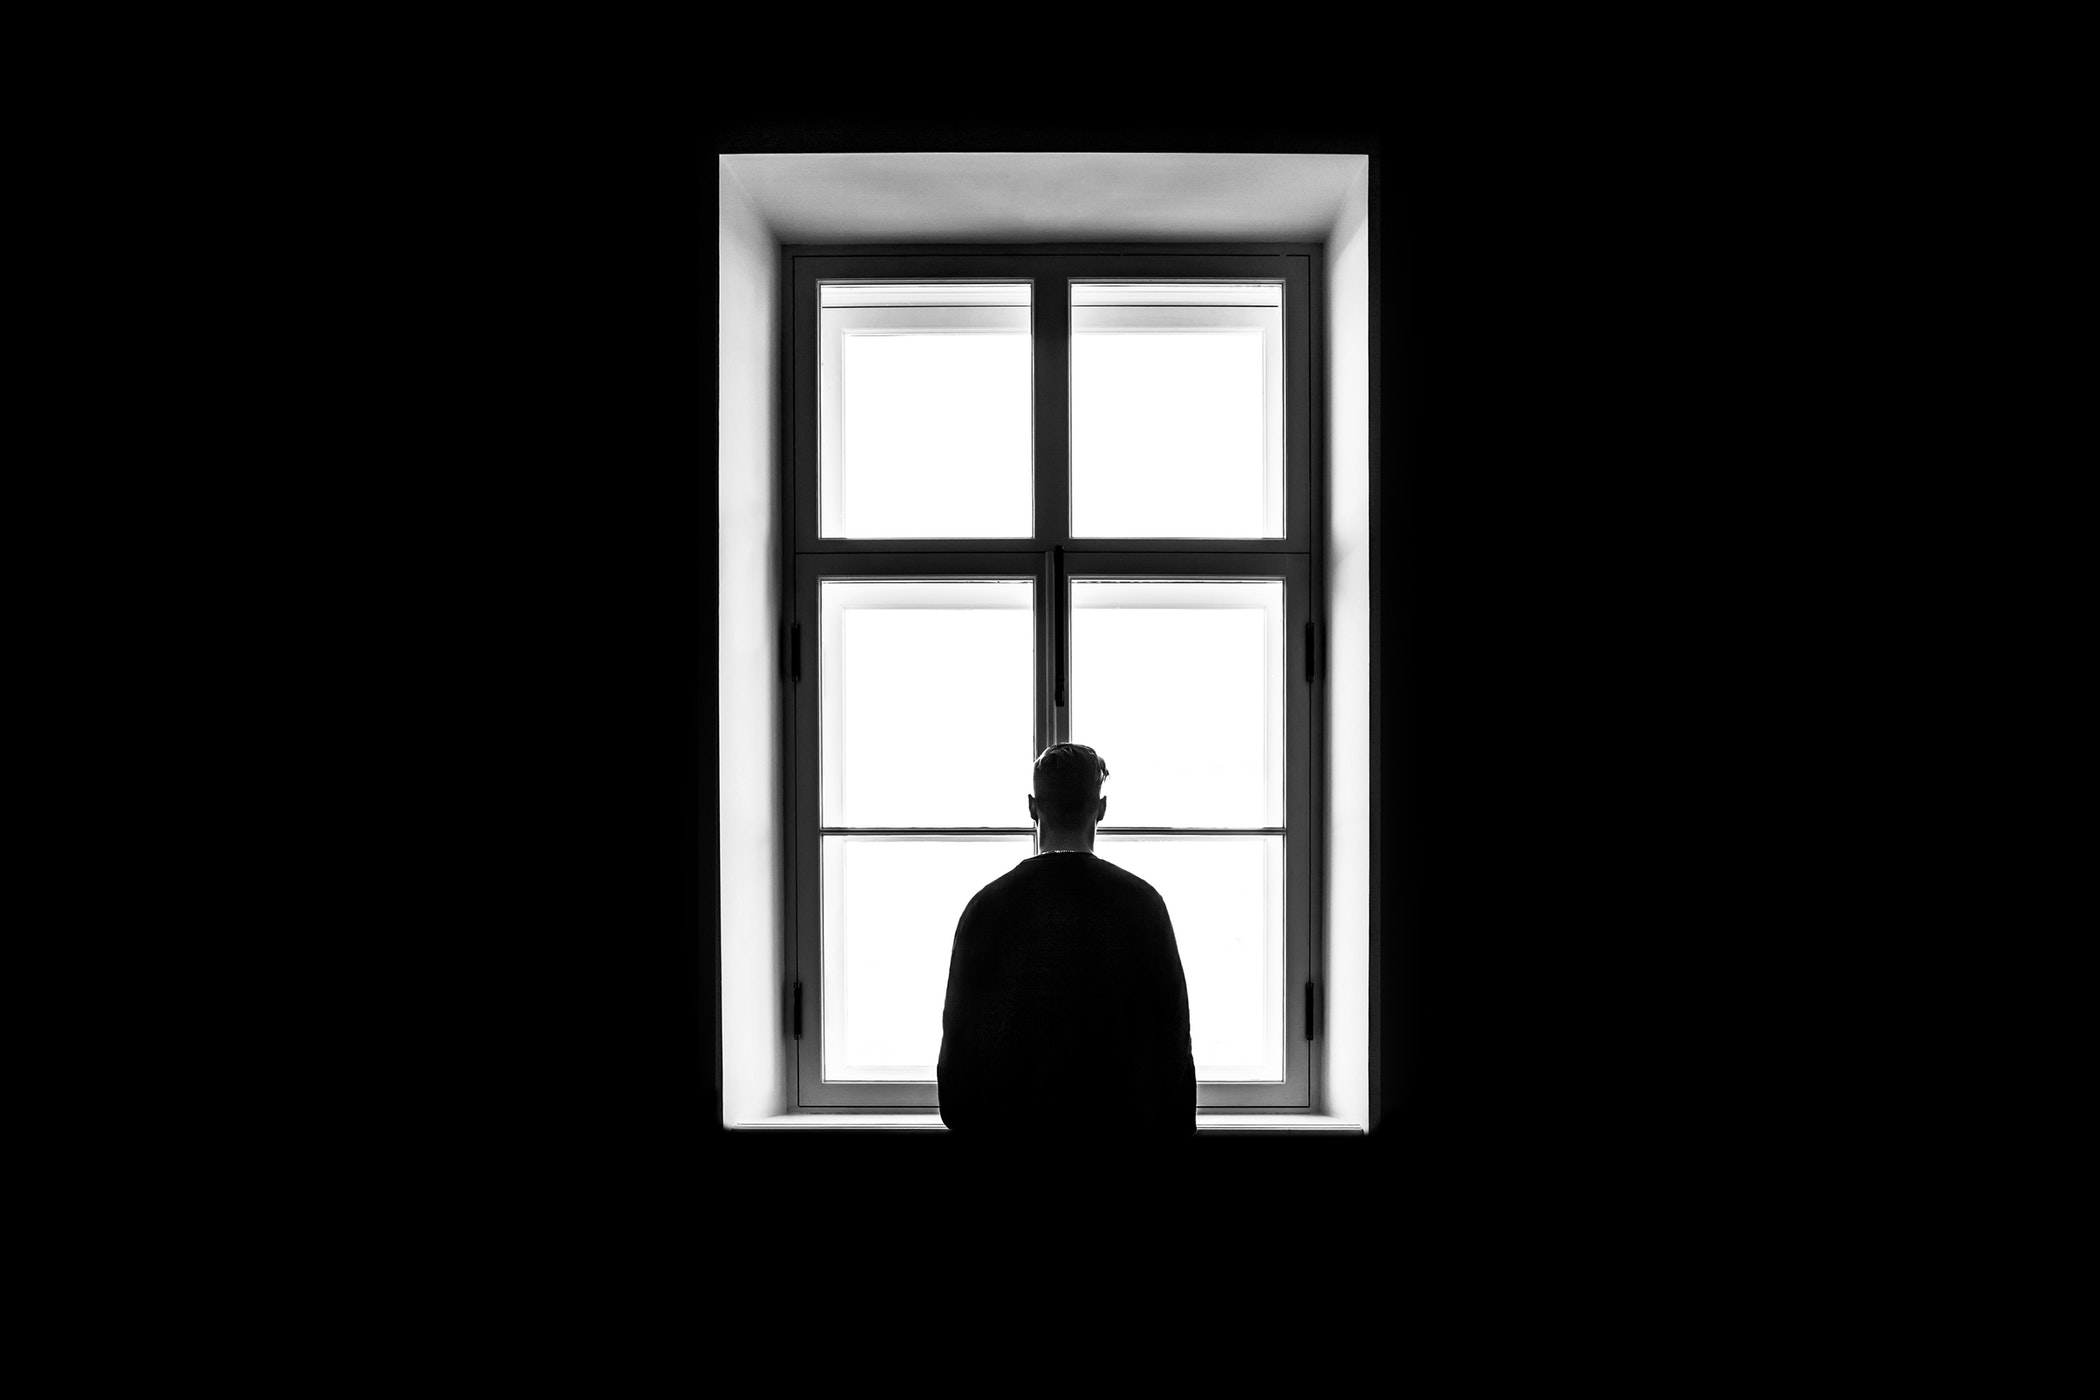 More than 40% of older adults reported feelings of loneliness.